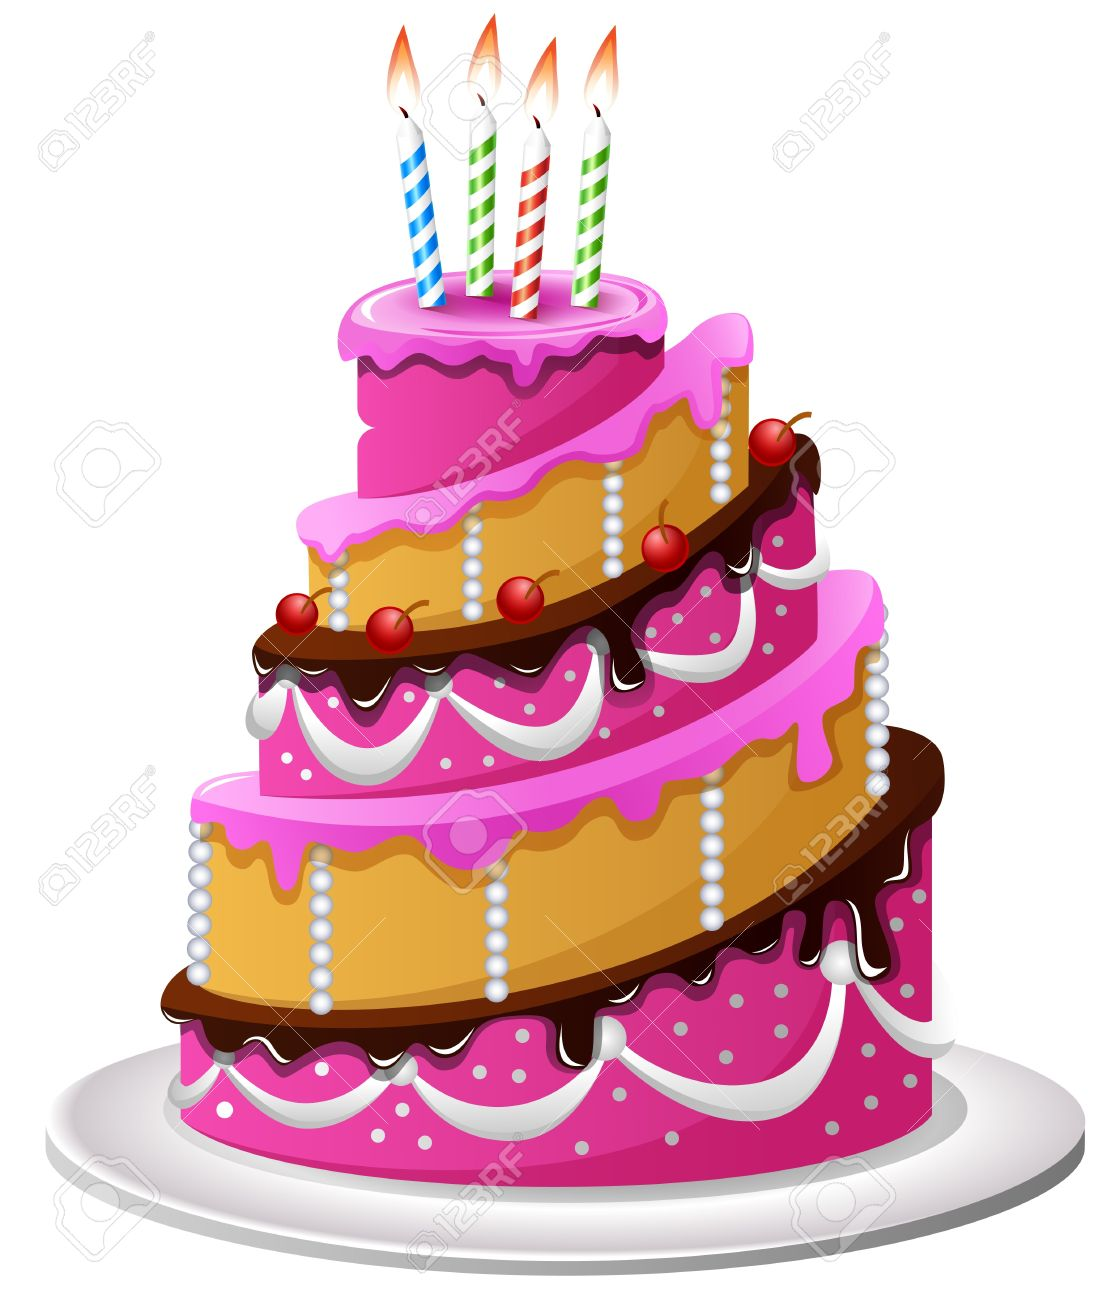 Birthday Cake Cartoon Royalty Free Cliparts Vectors And Stock Illustration Image 61449232